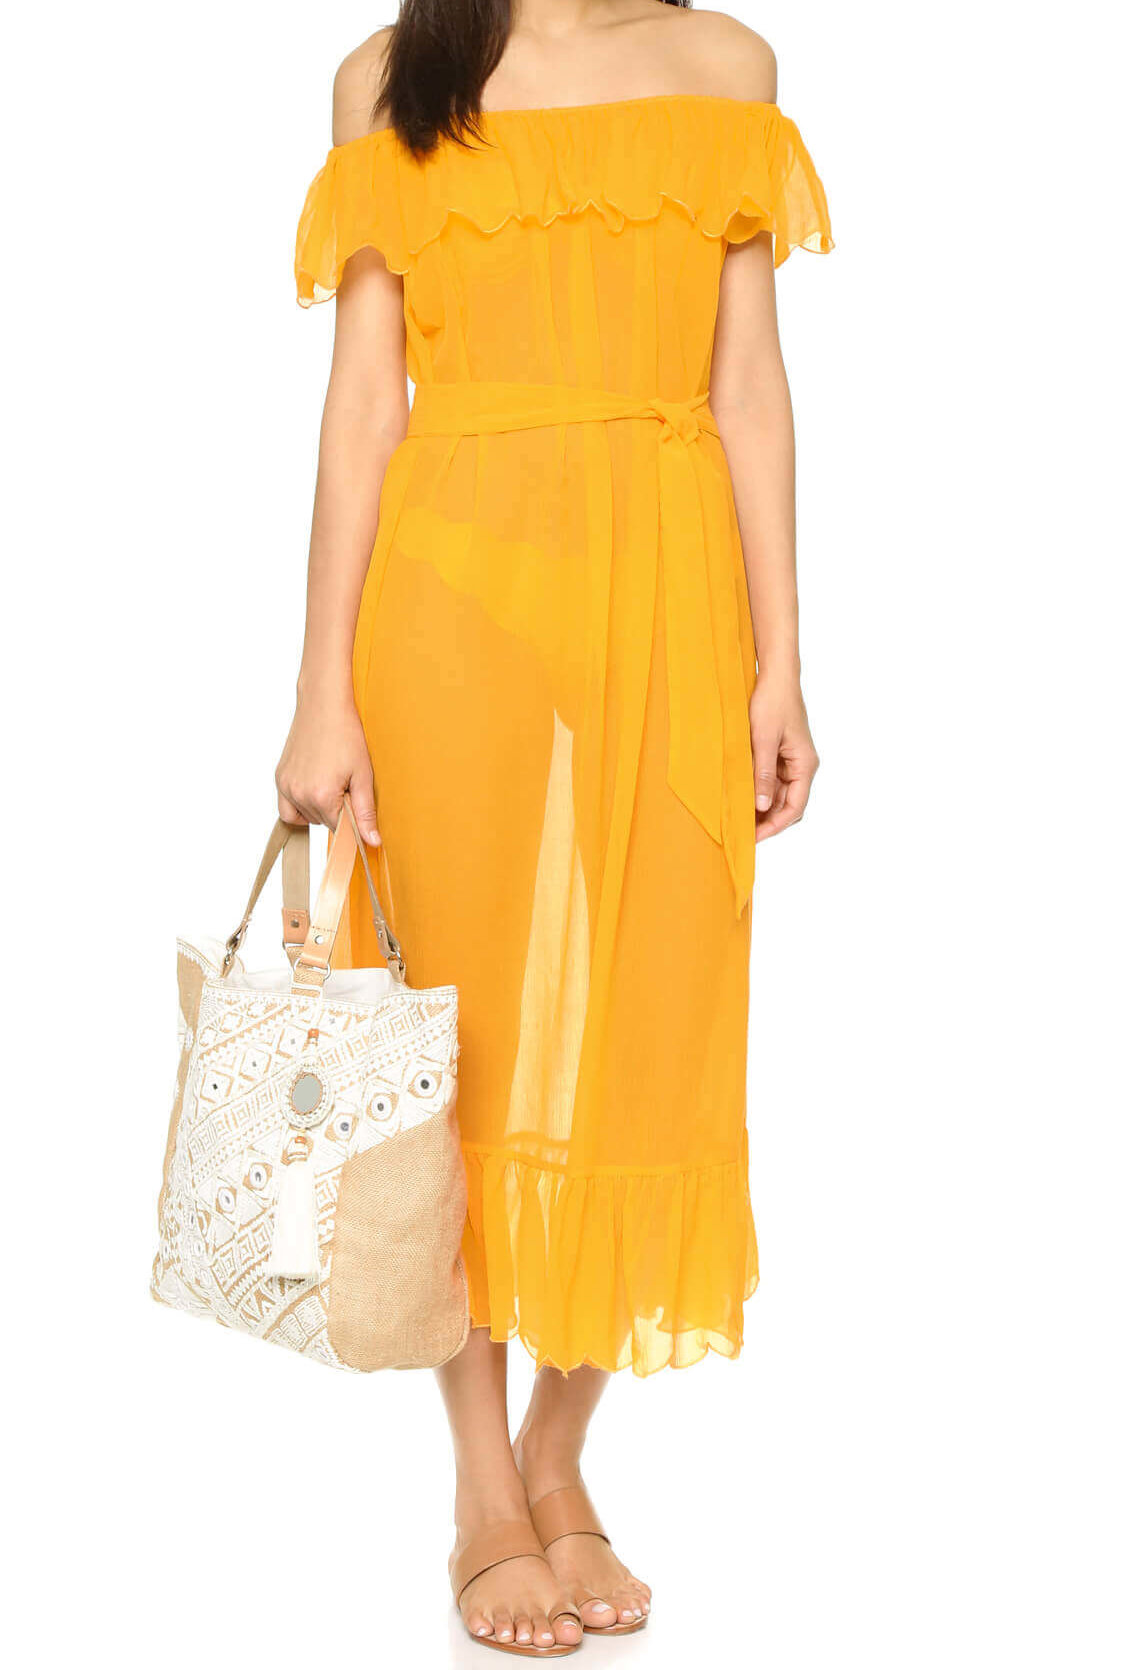 MARYSIA SWIM mustard dress